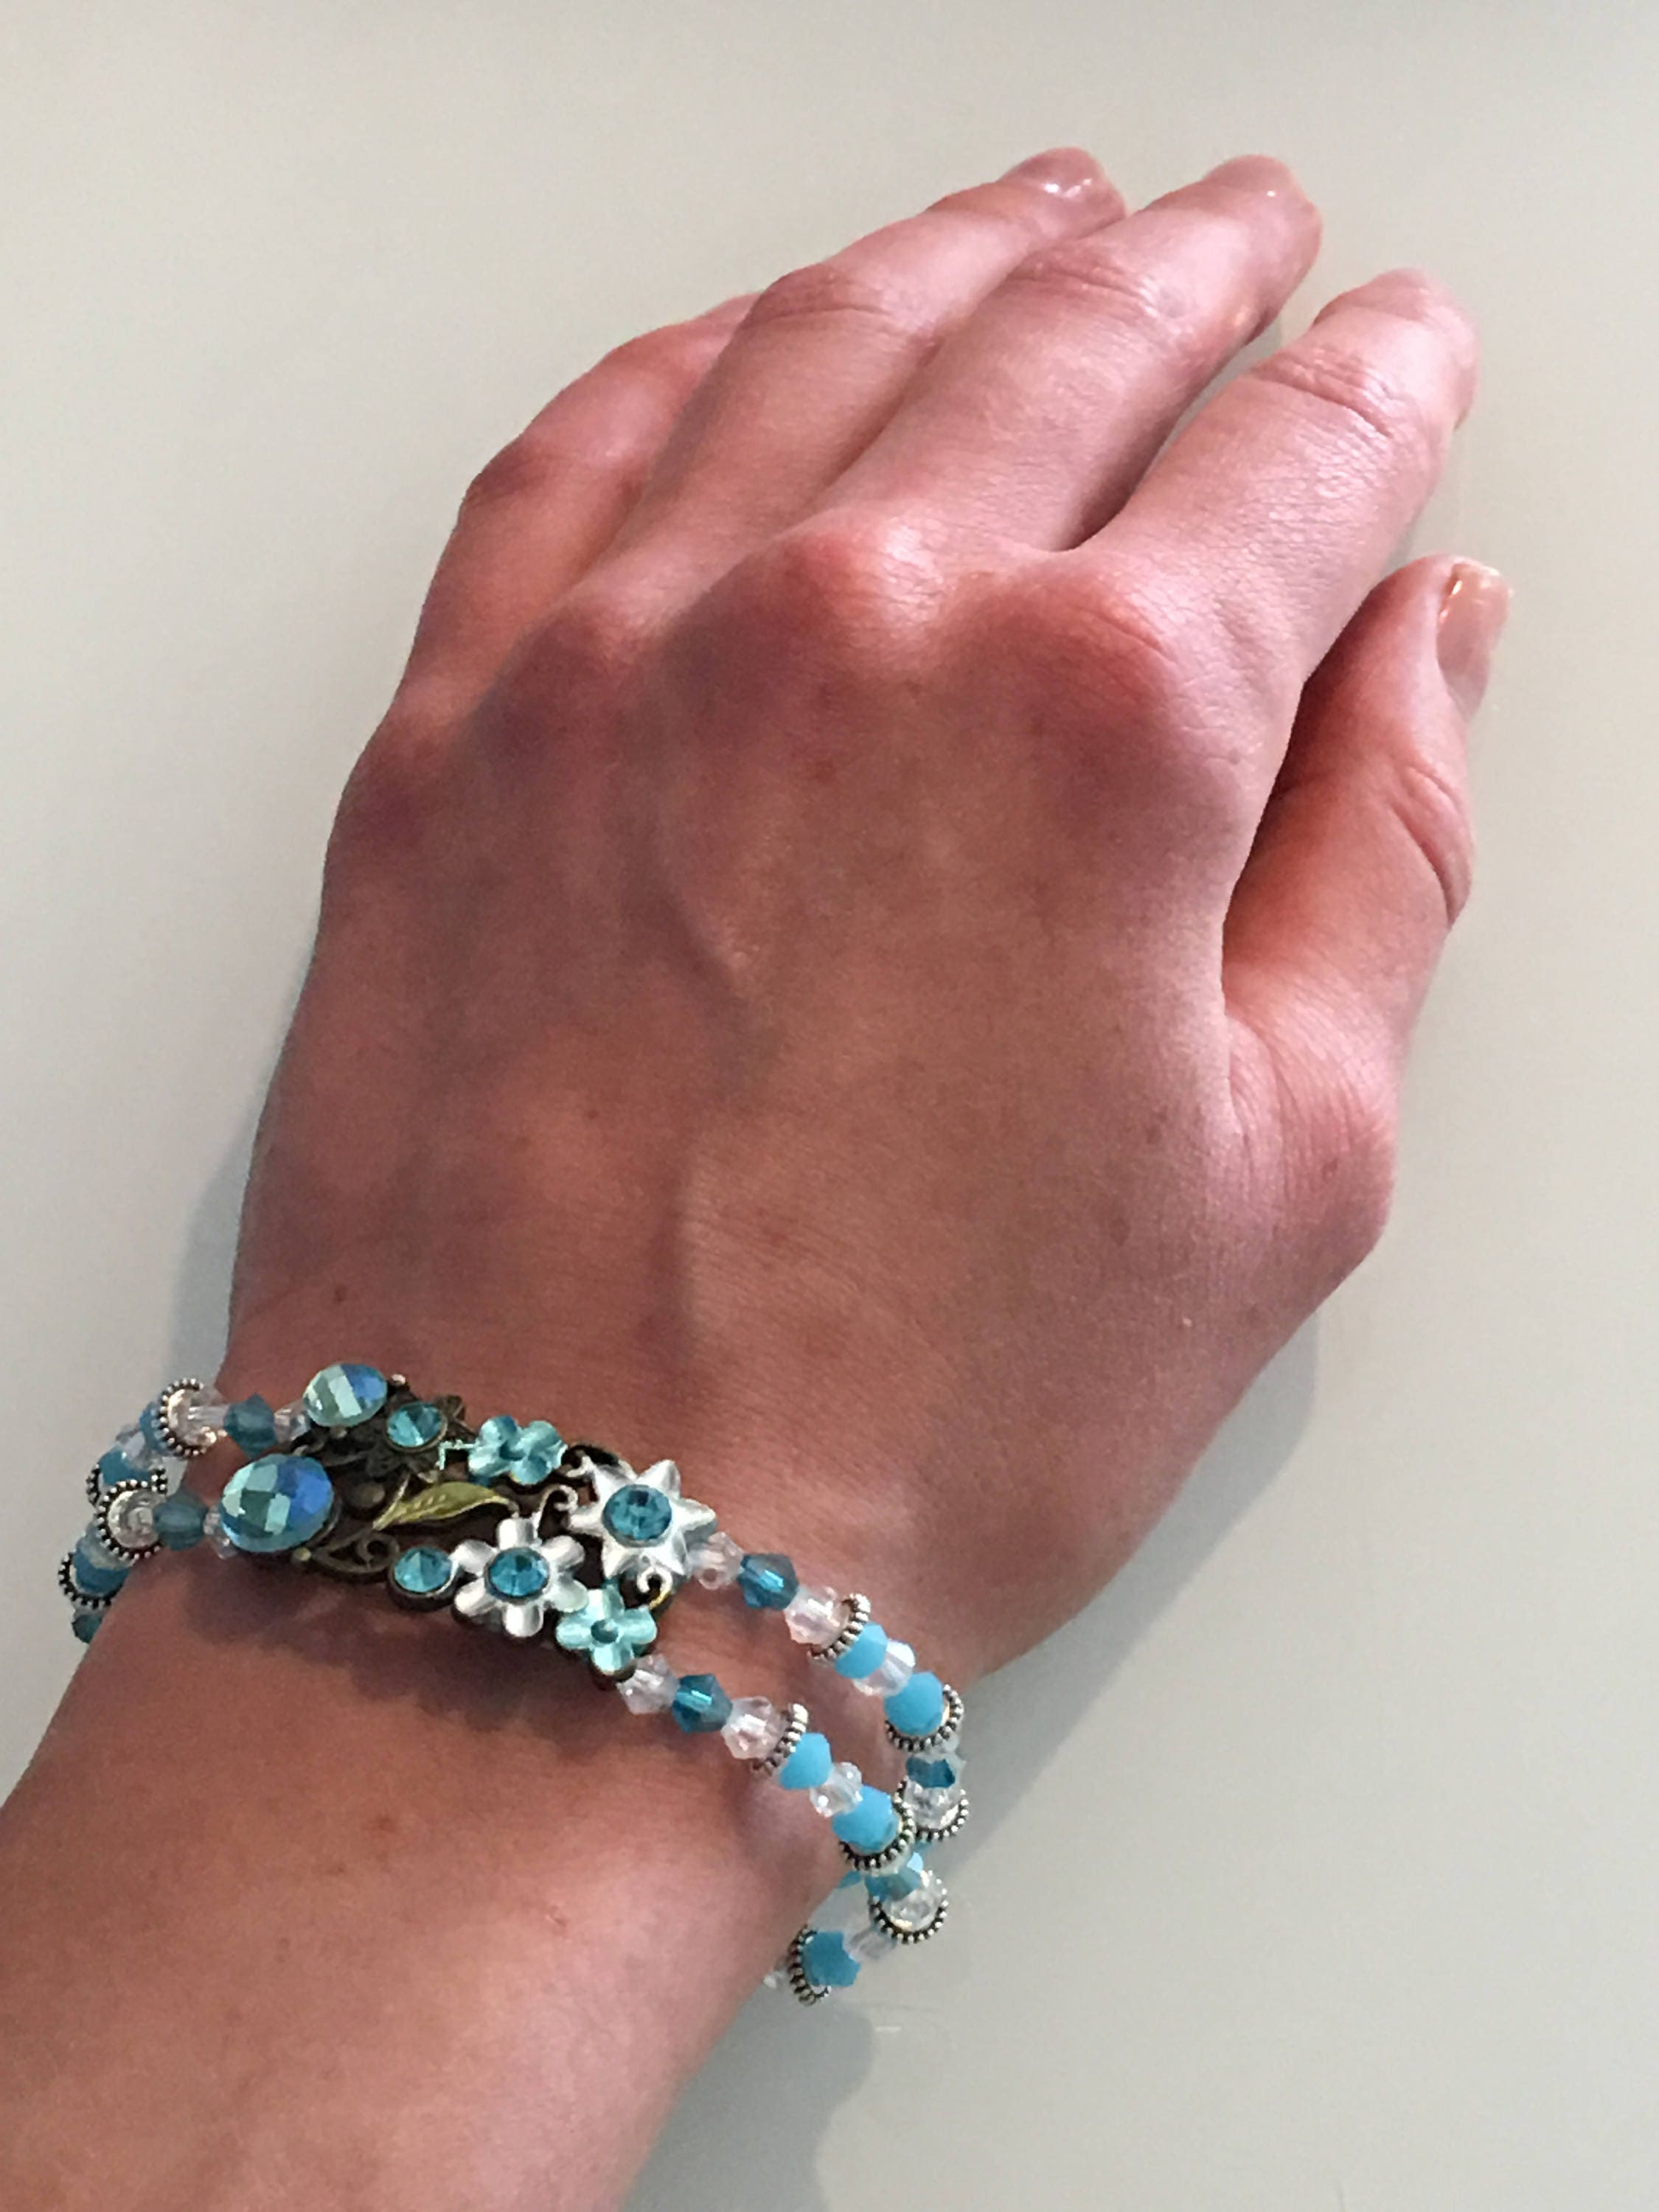 dorothy dysautonomia uncategorized category bracelet